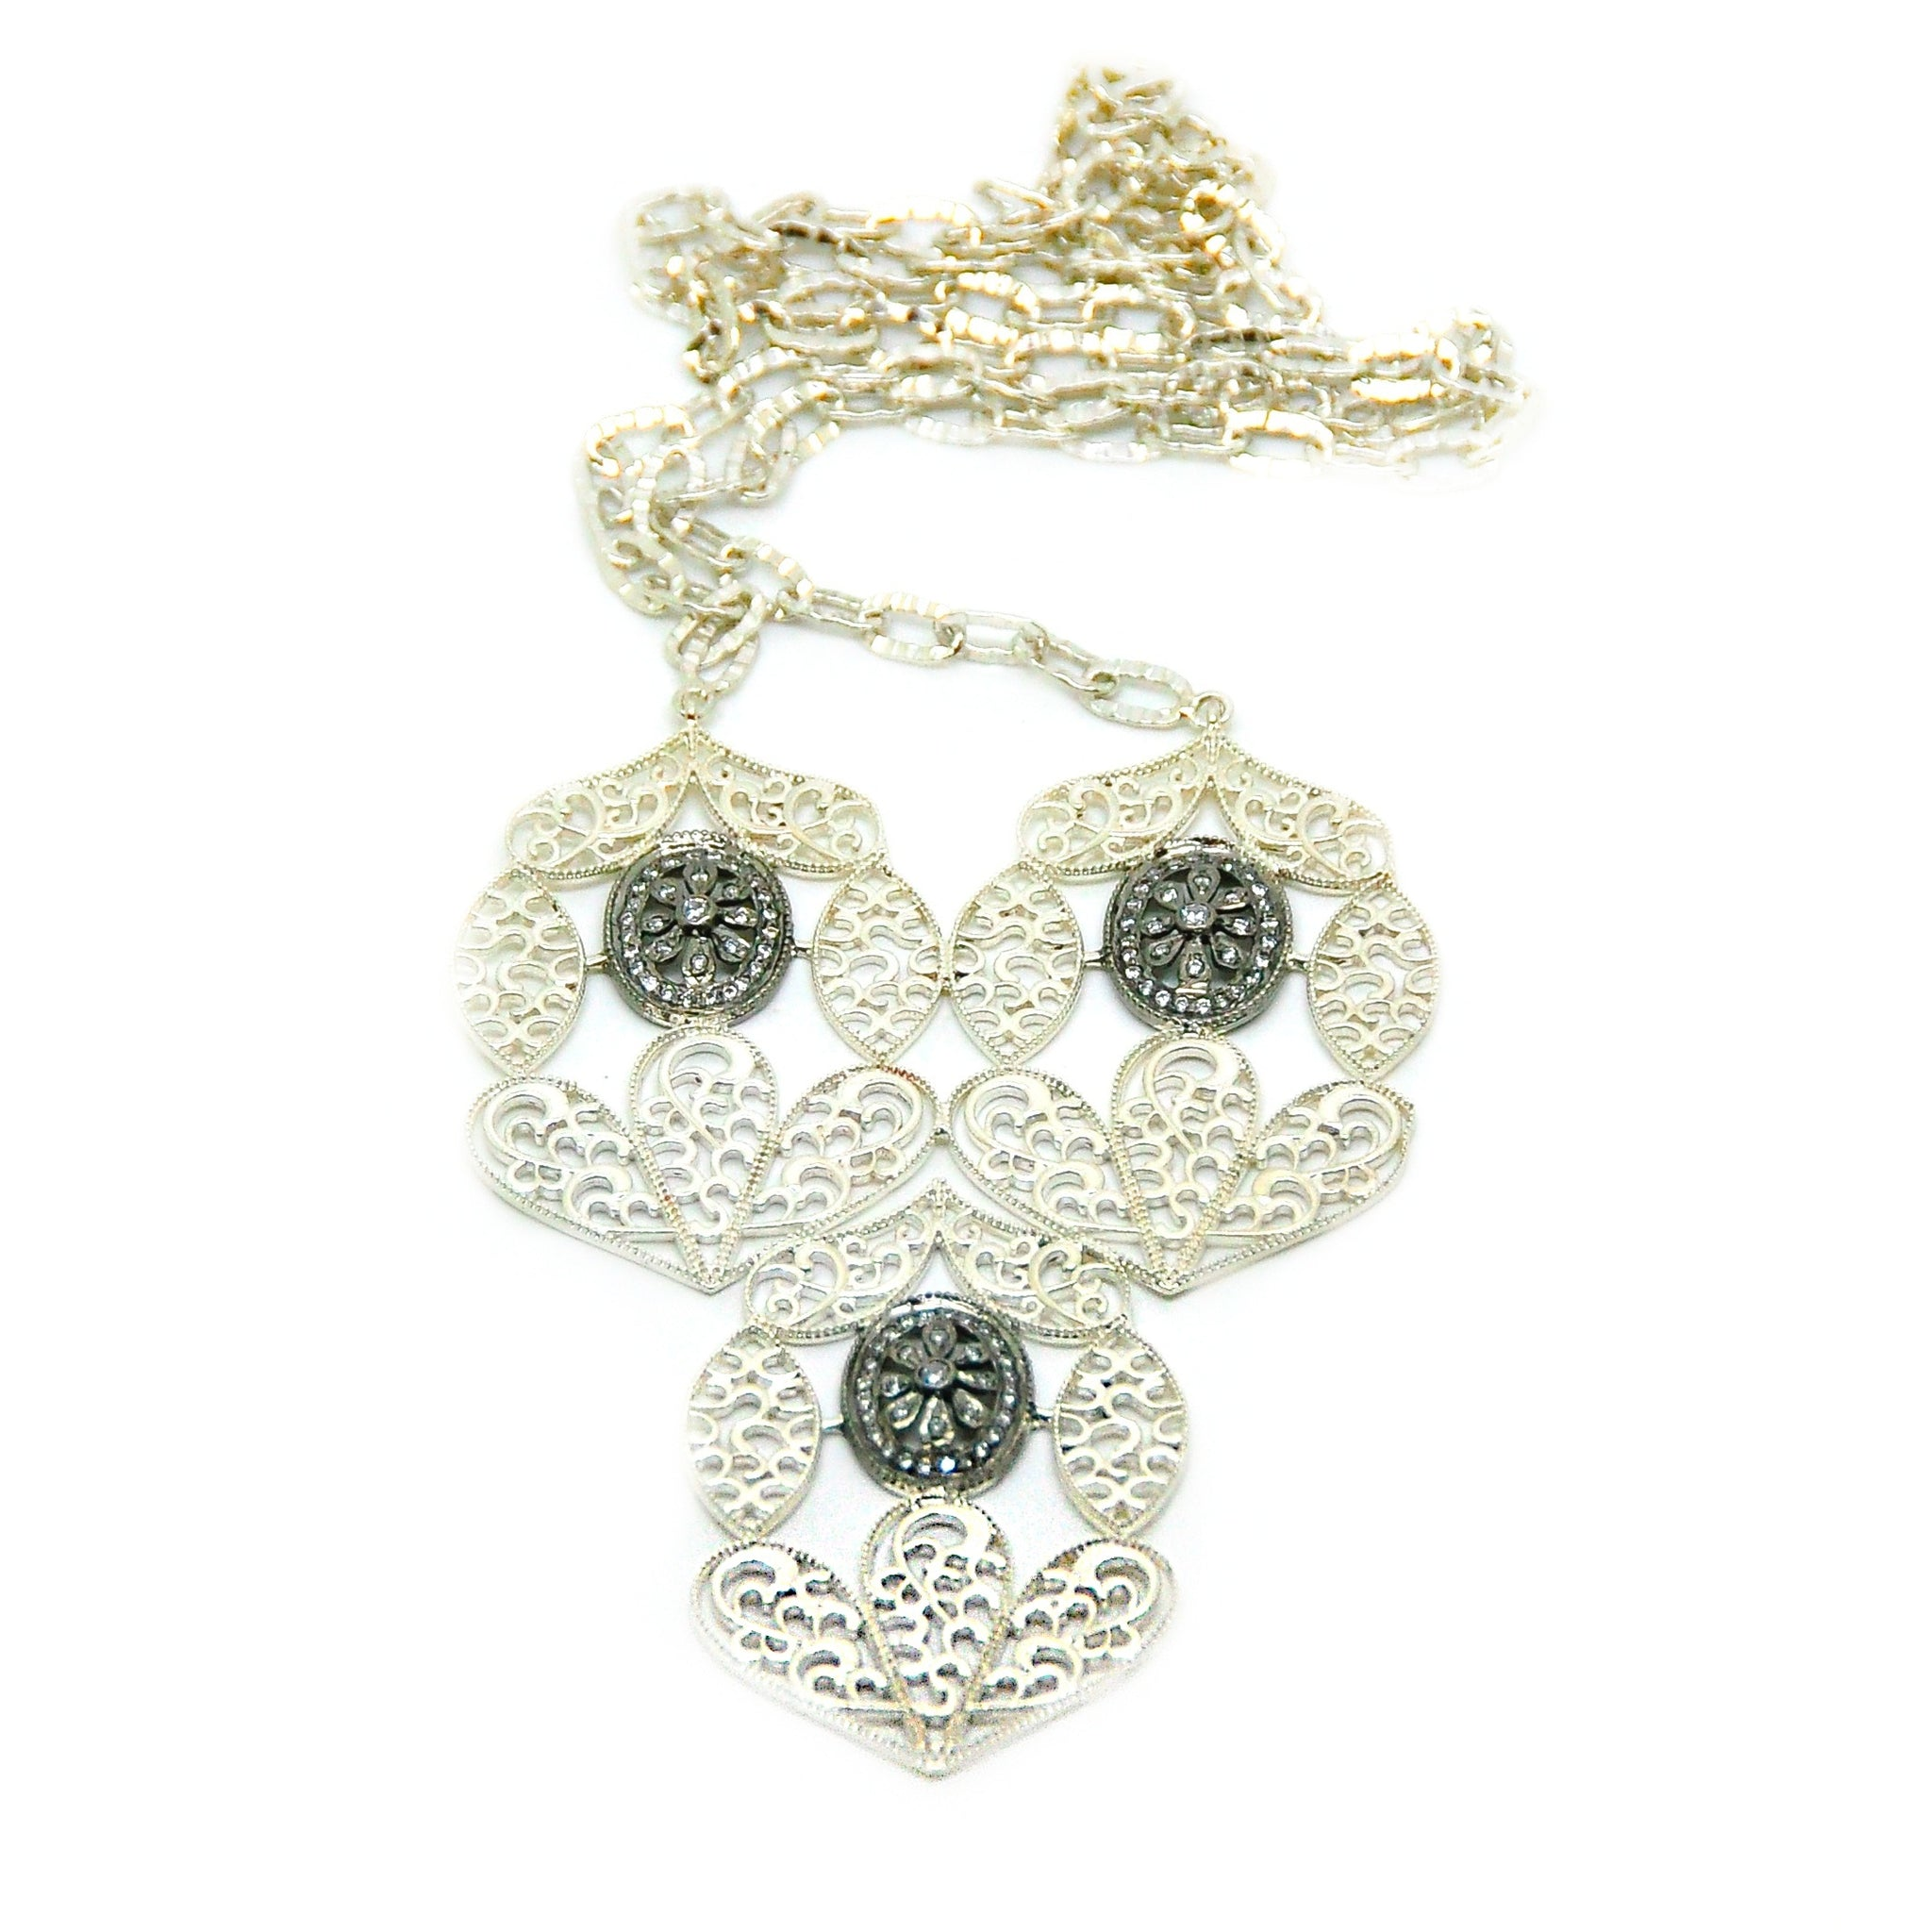 ON SALE large filigree necklace 2